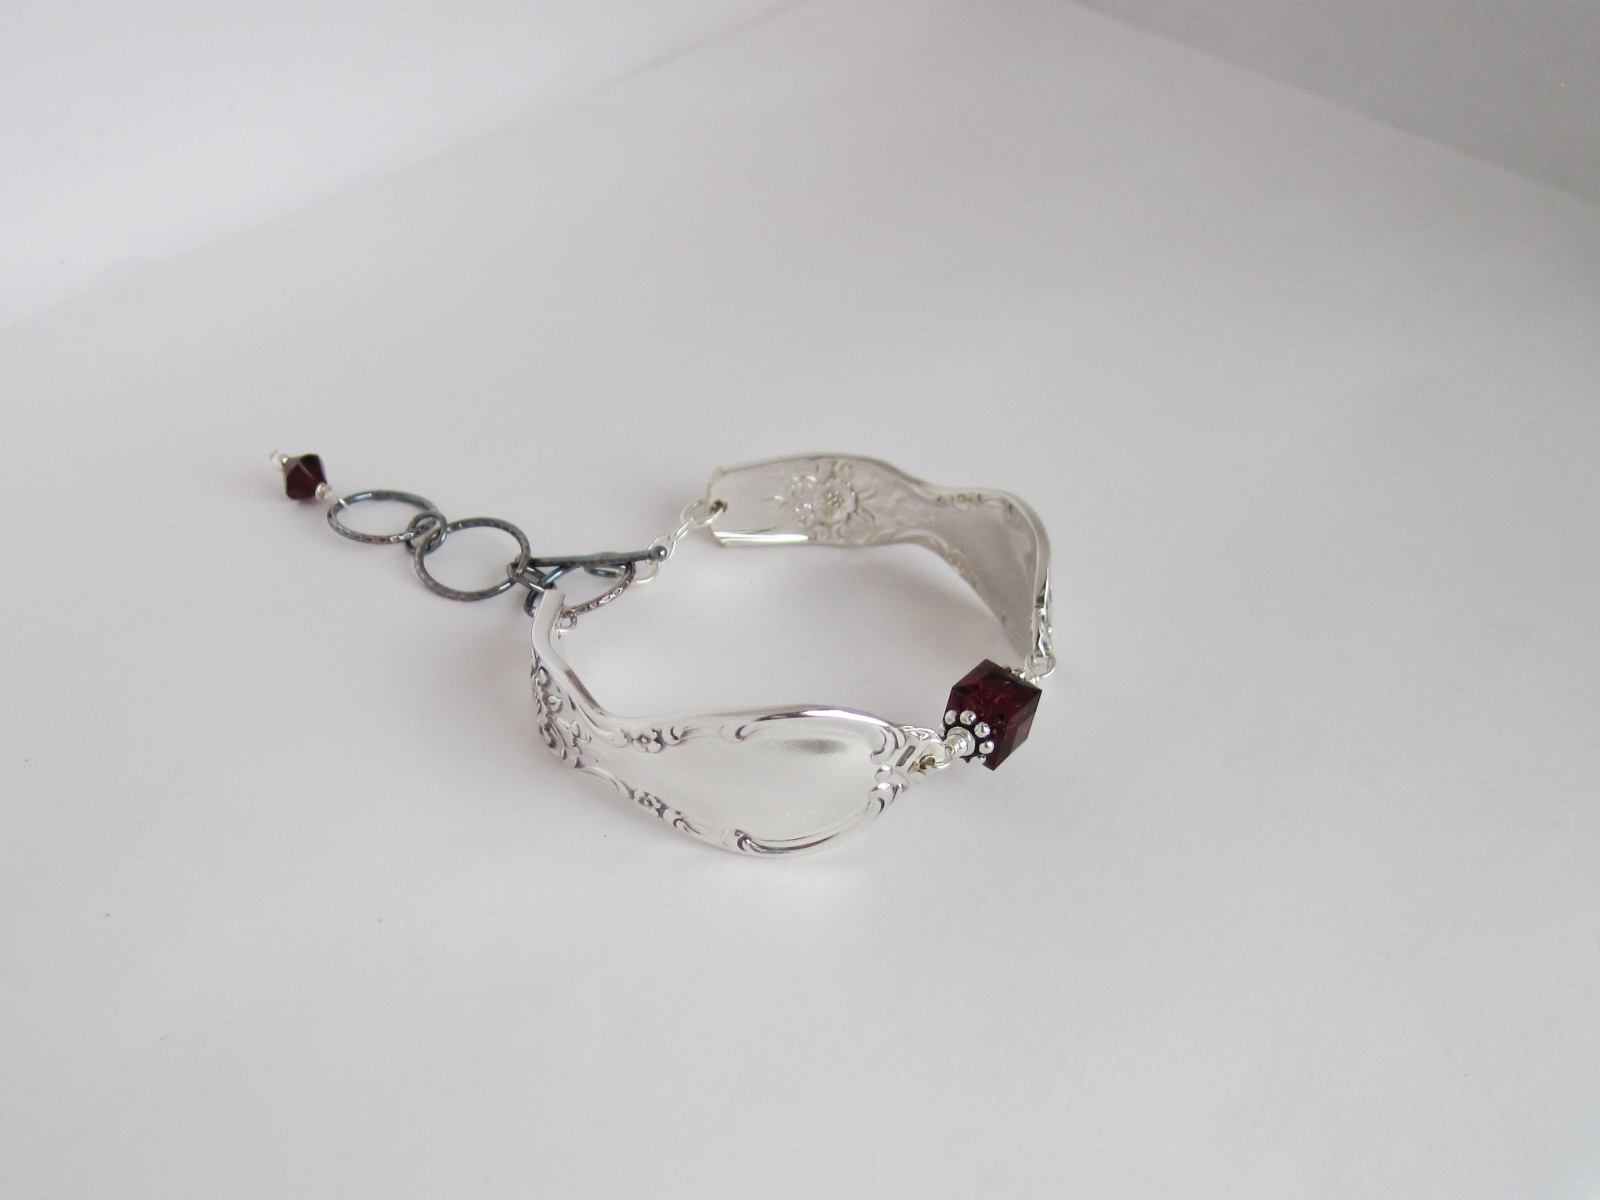 ring birthstone january sterling bracelet silver red jewelry pin handmade garnet everyday